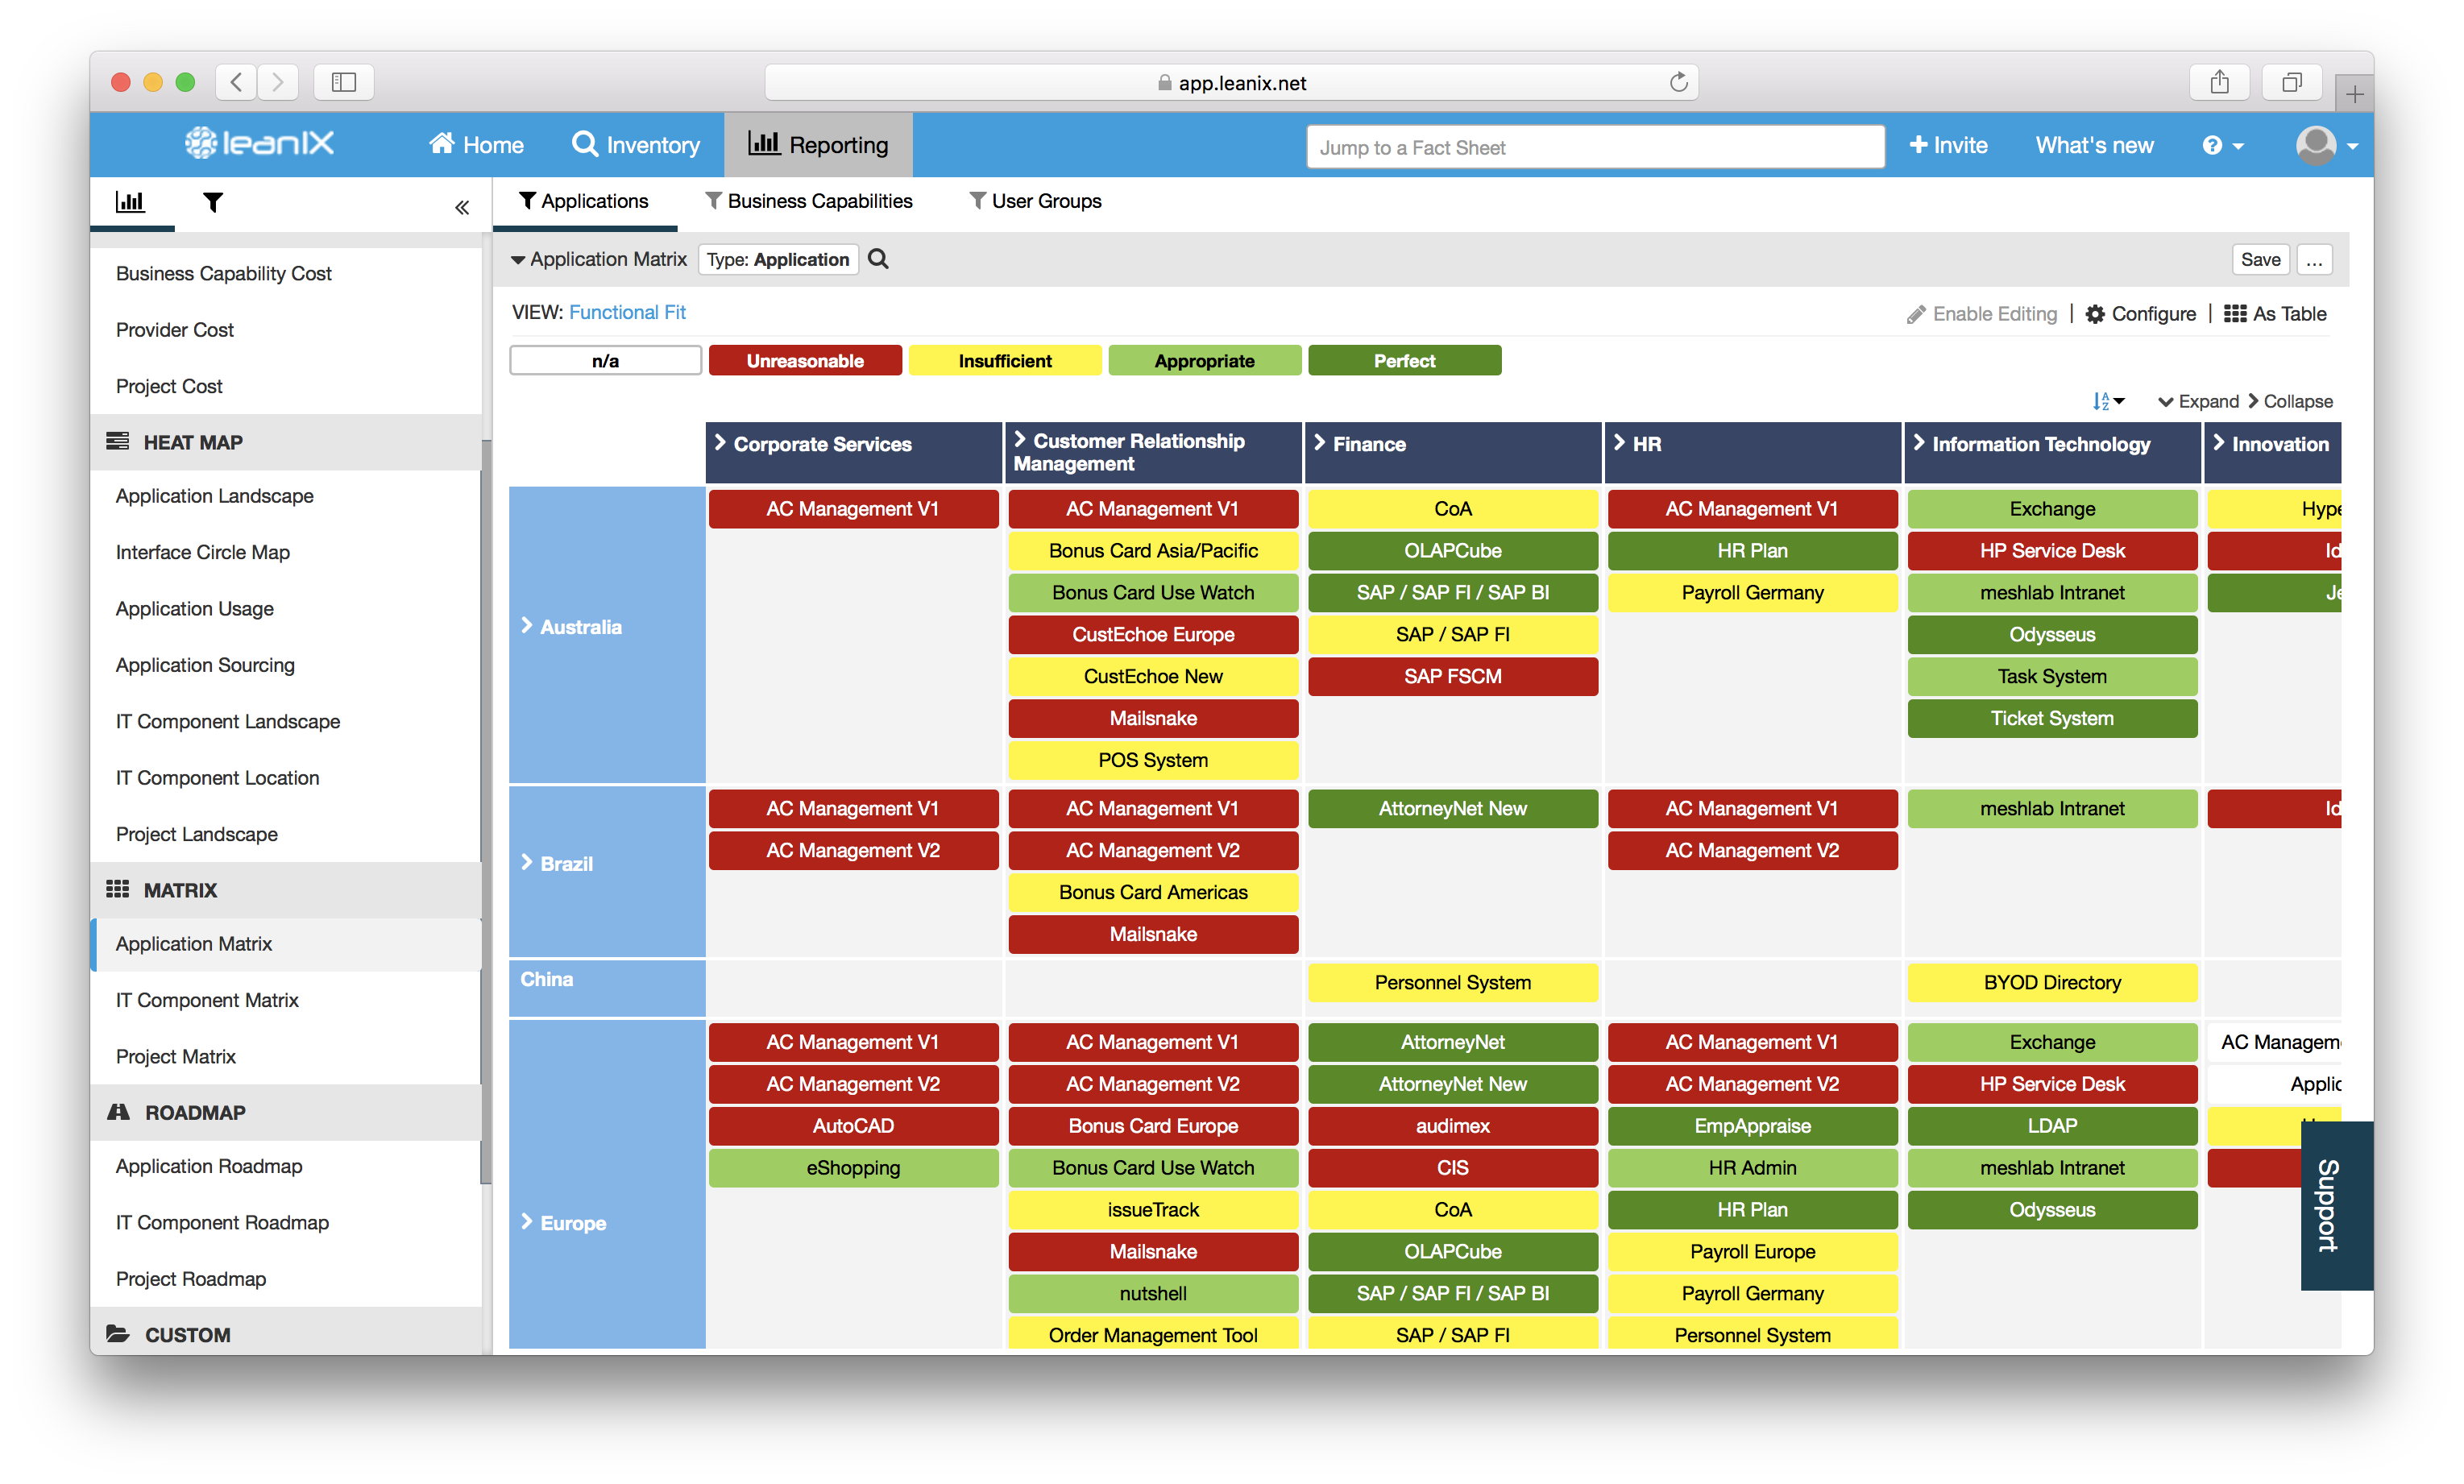 Business capabilities and application matrix